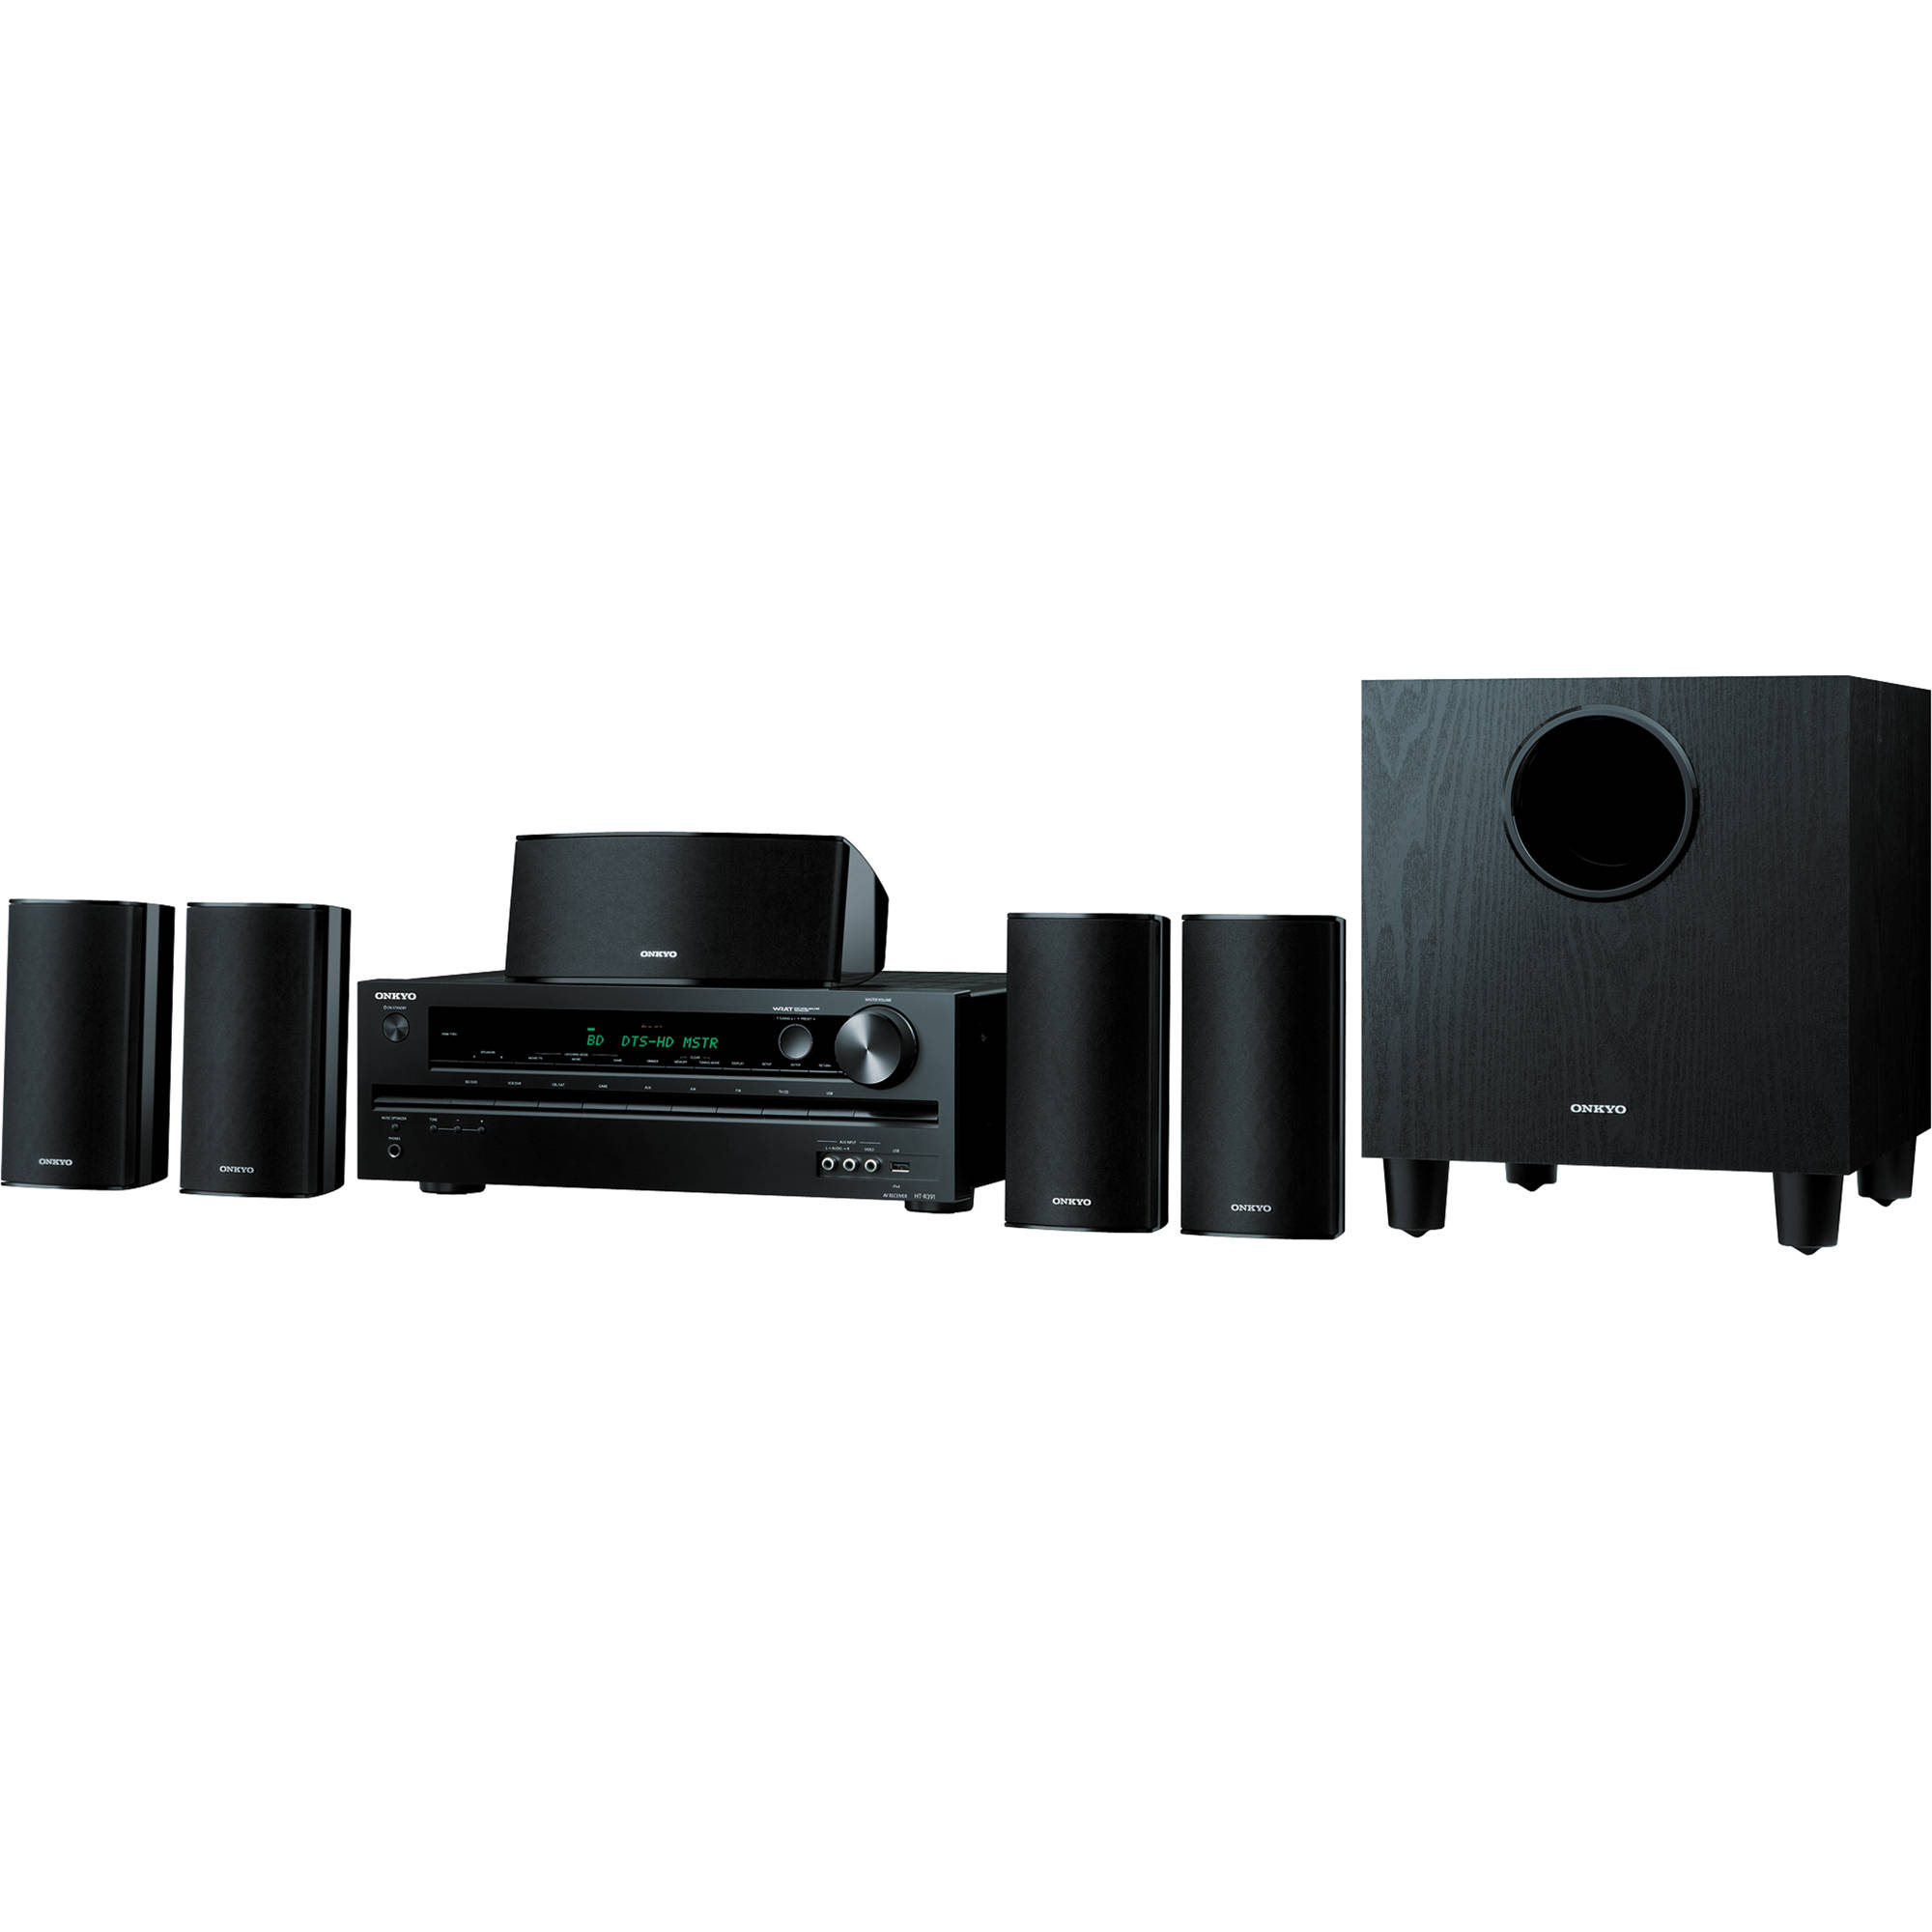 onkyo ht s3500 home theater package ht s3500 b h photo video. Black Bedroom Furniture Sets. Home Design Ideas